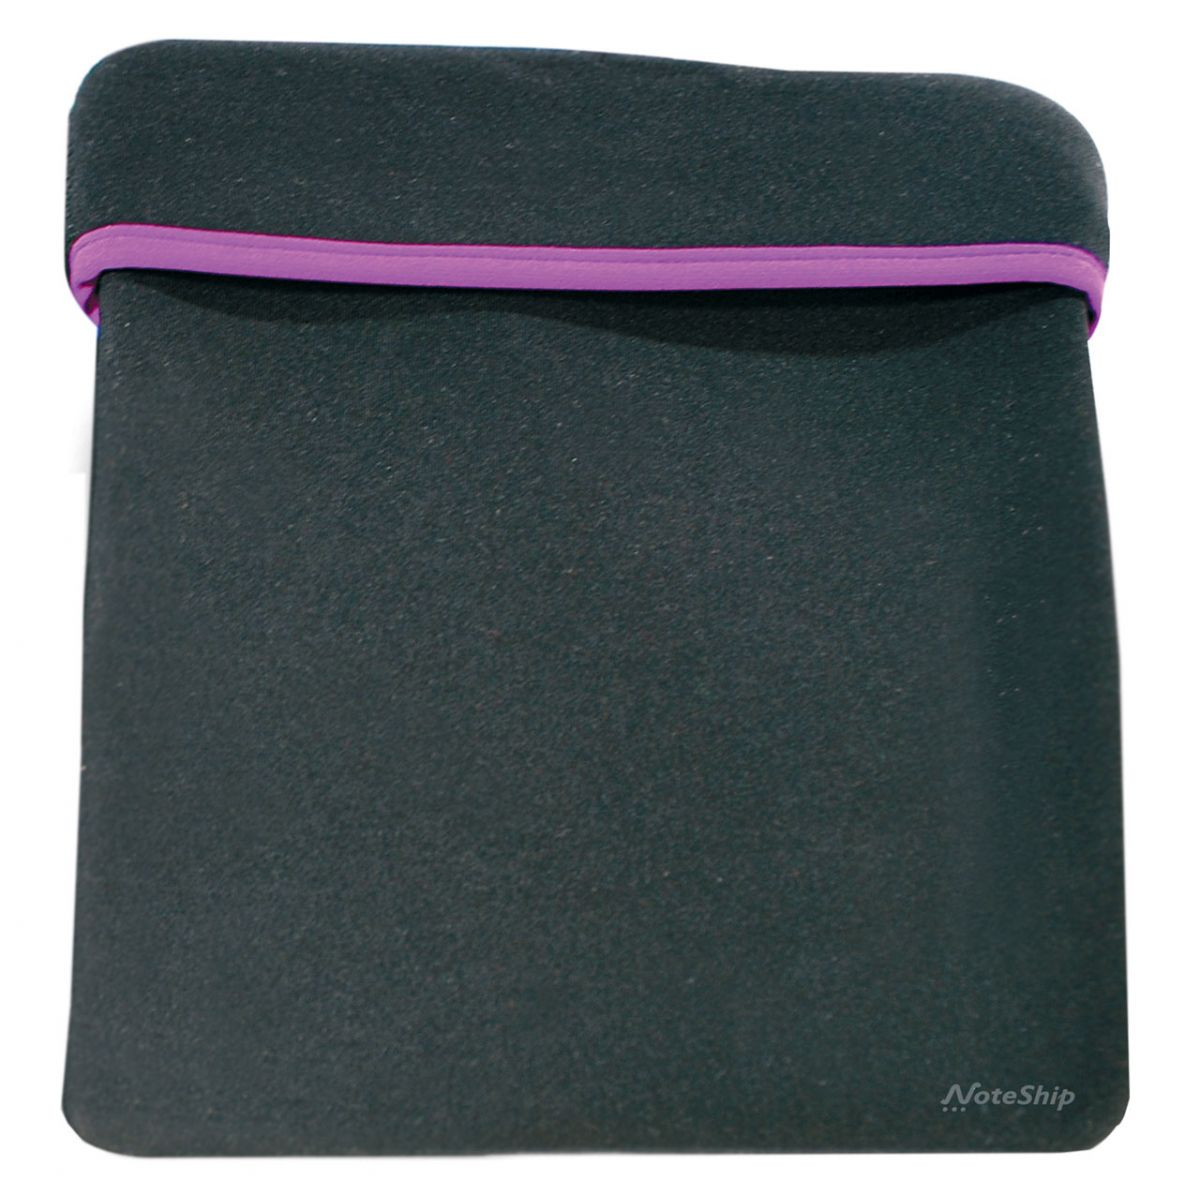 Case de Neoprene para Netbook 10 Glove Violeta 2621 - Leadership